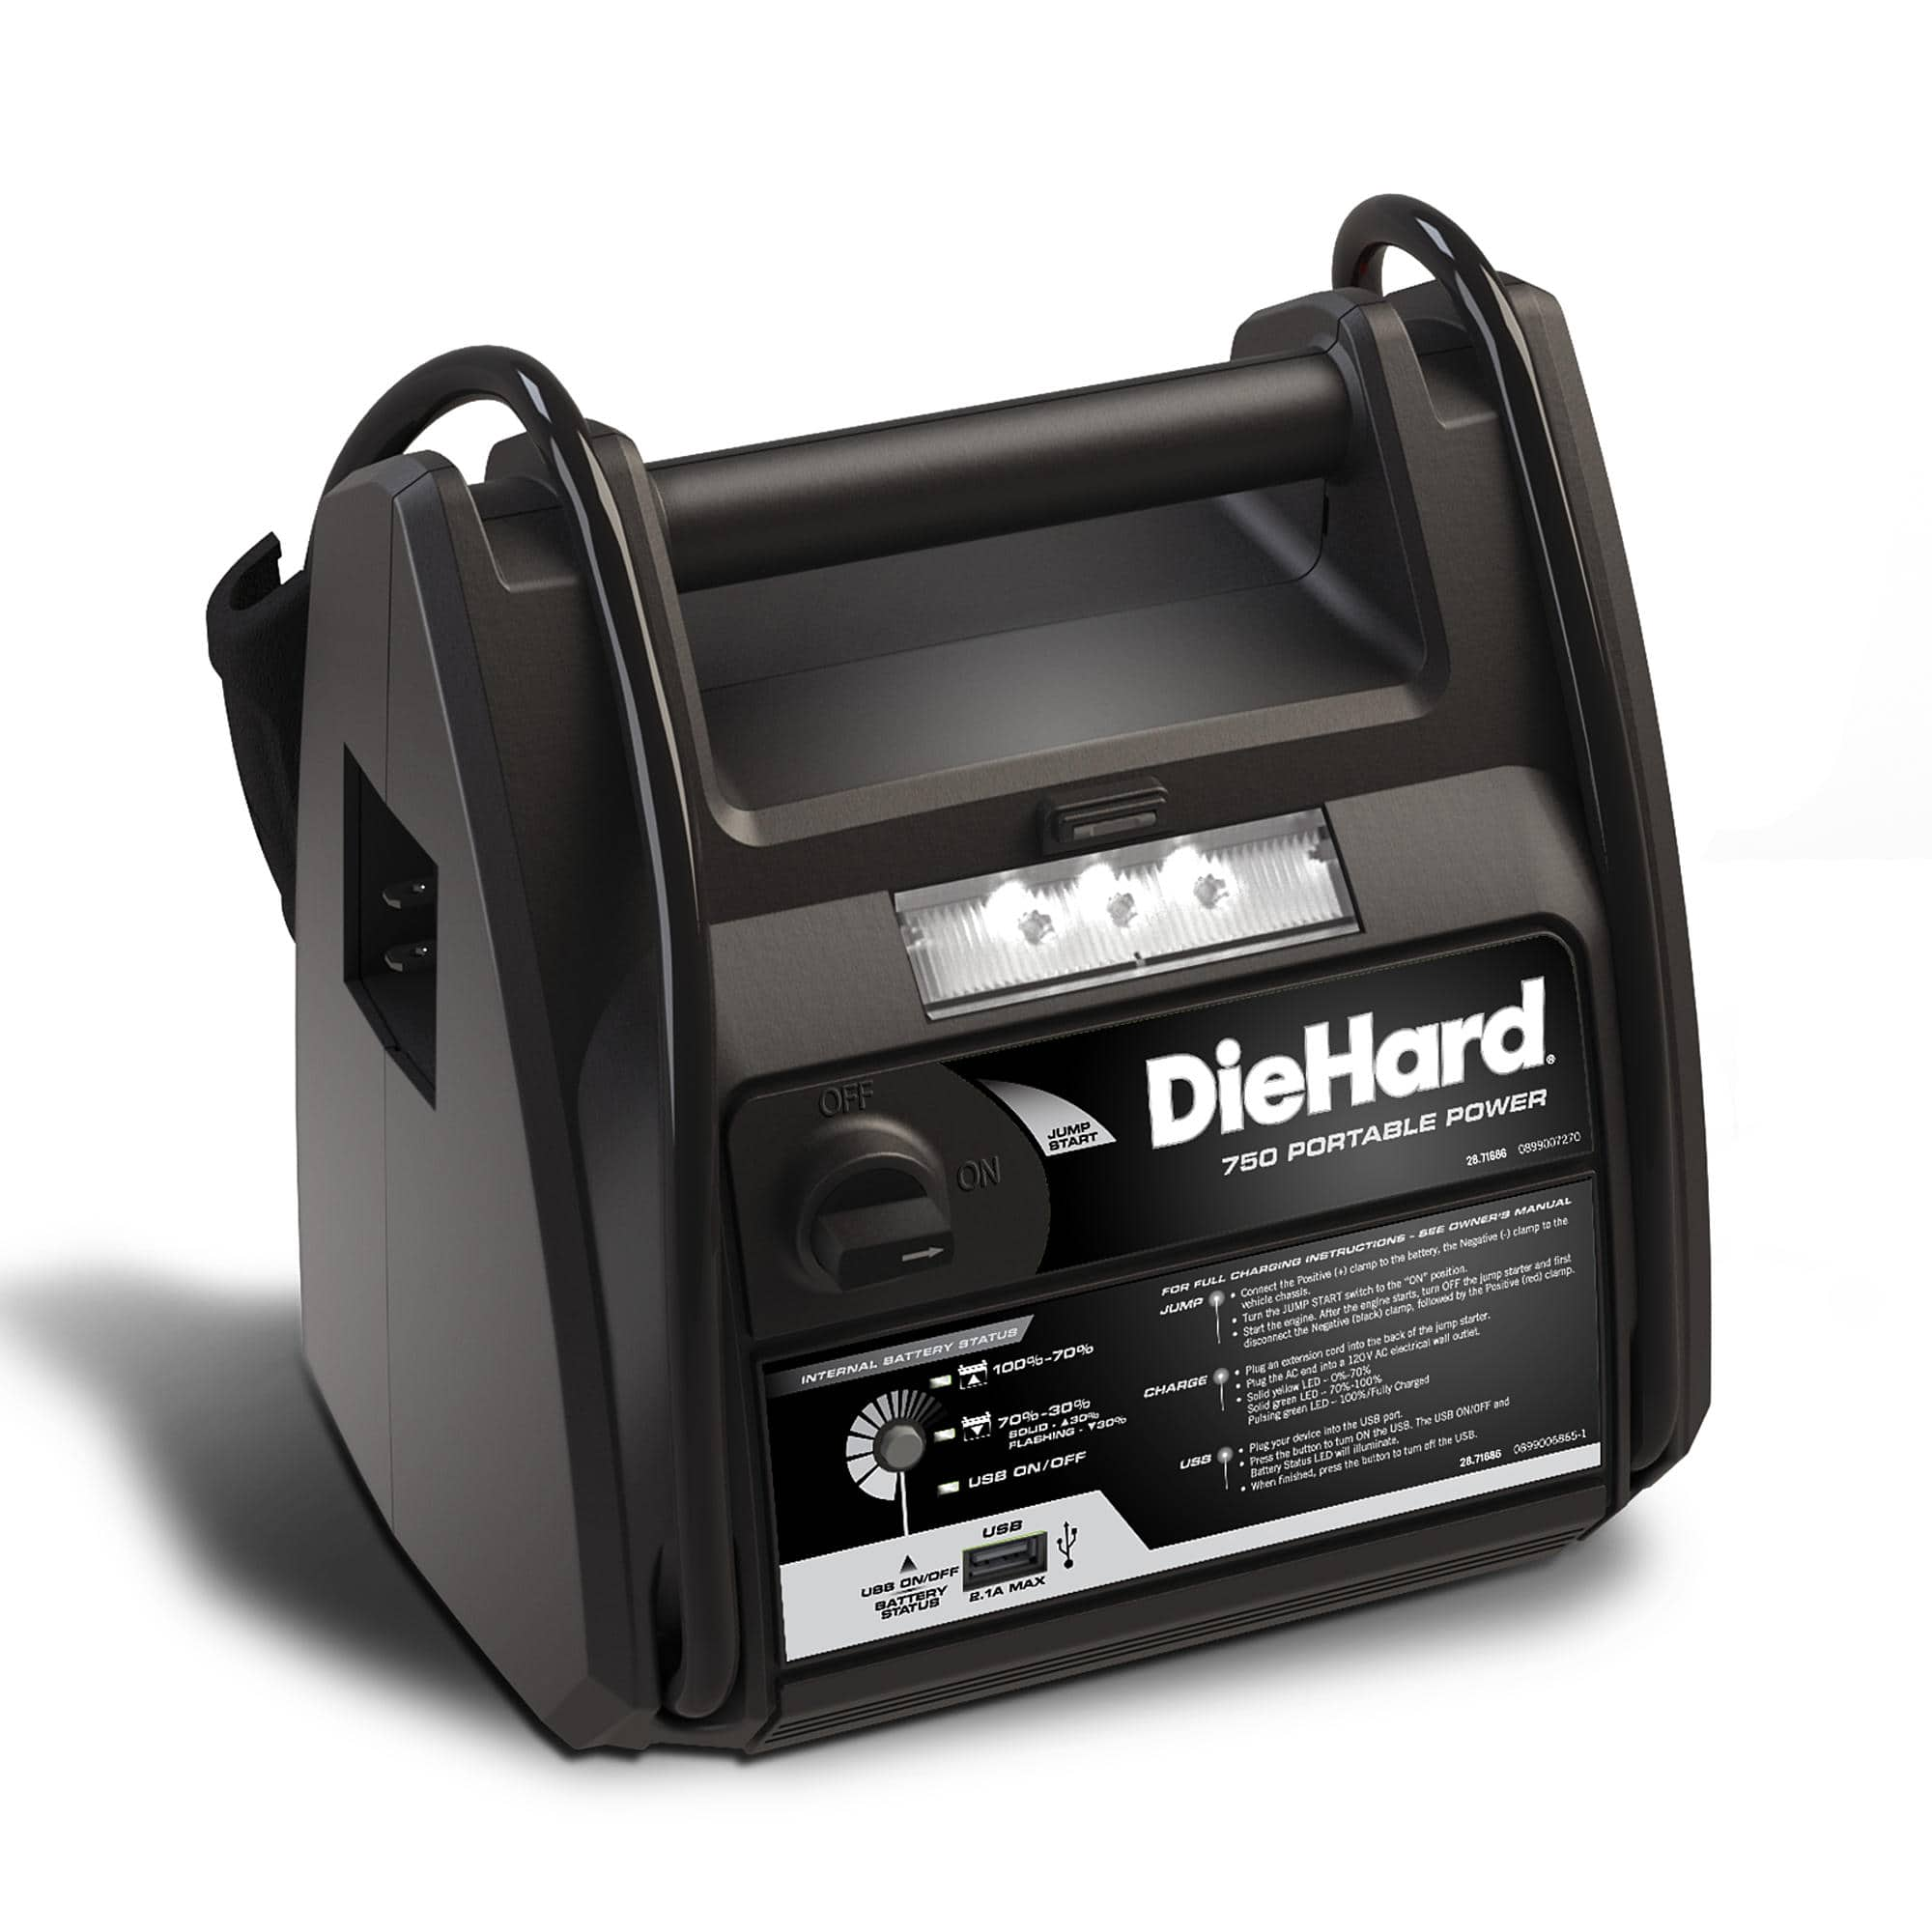 DieHard Portable Power 750 Charger - $60 + $9 in SYW Rewards